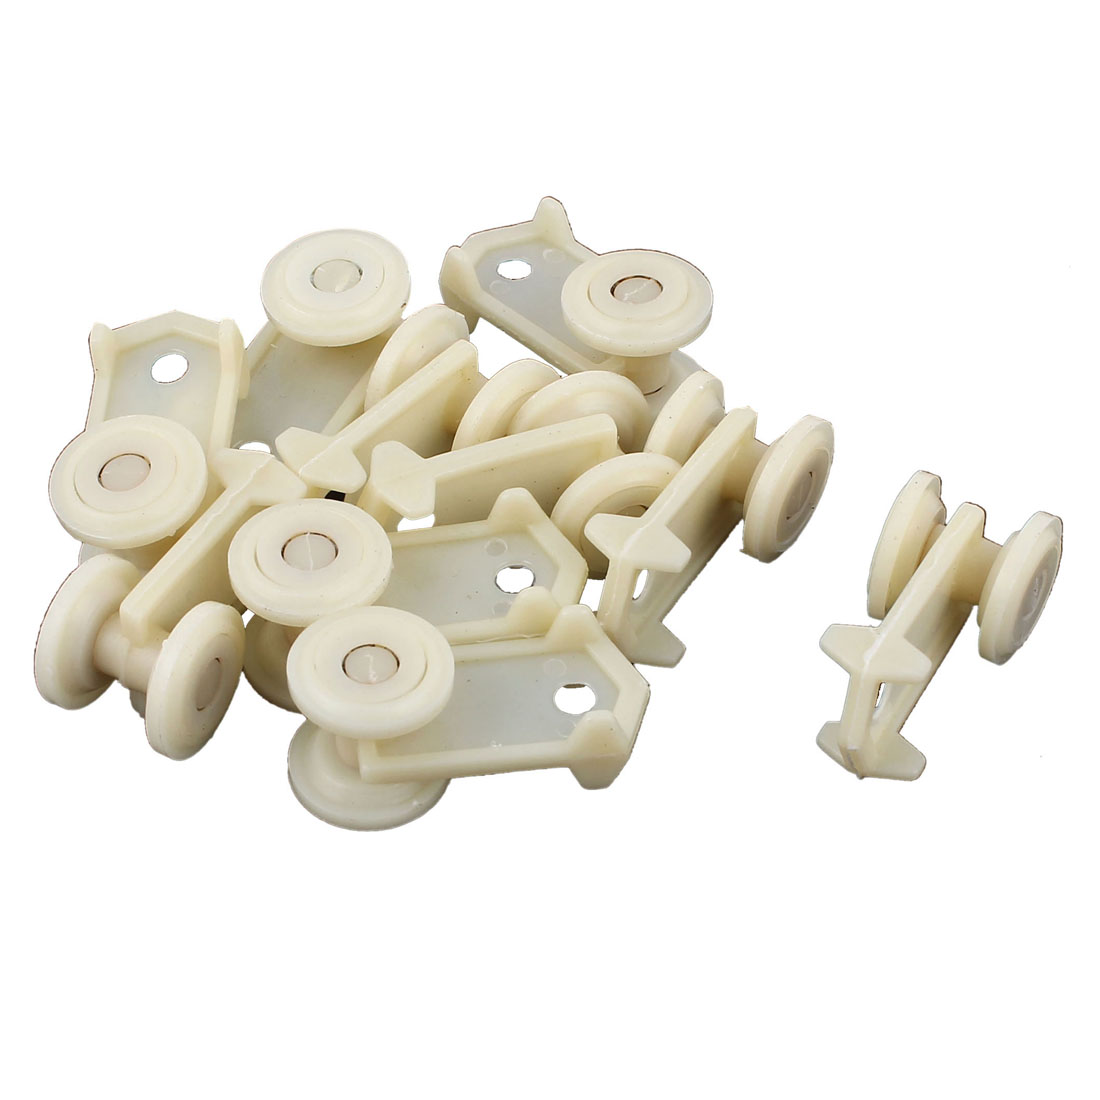 10pcs Plastic 15mm Dia Wheel Curtain Track Carrier Rollers Beige